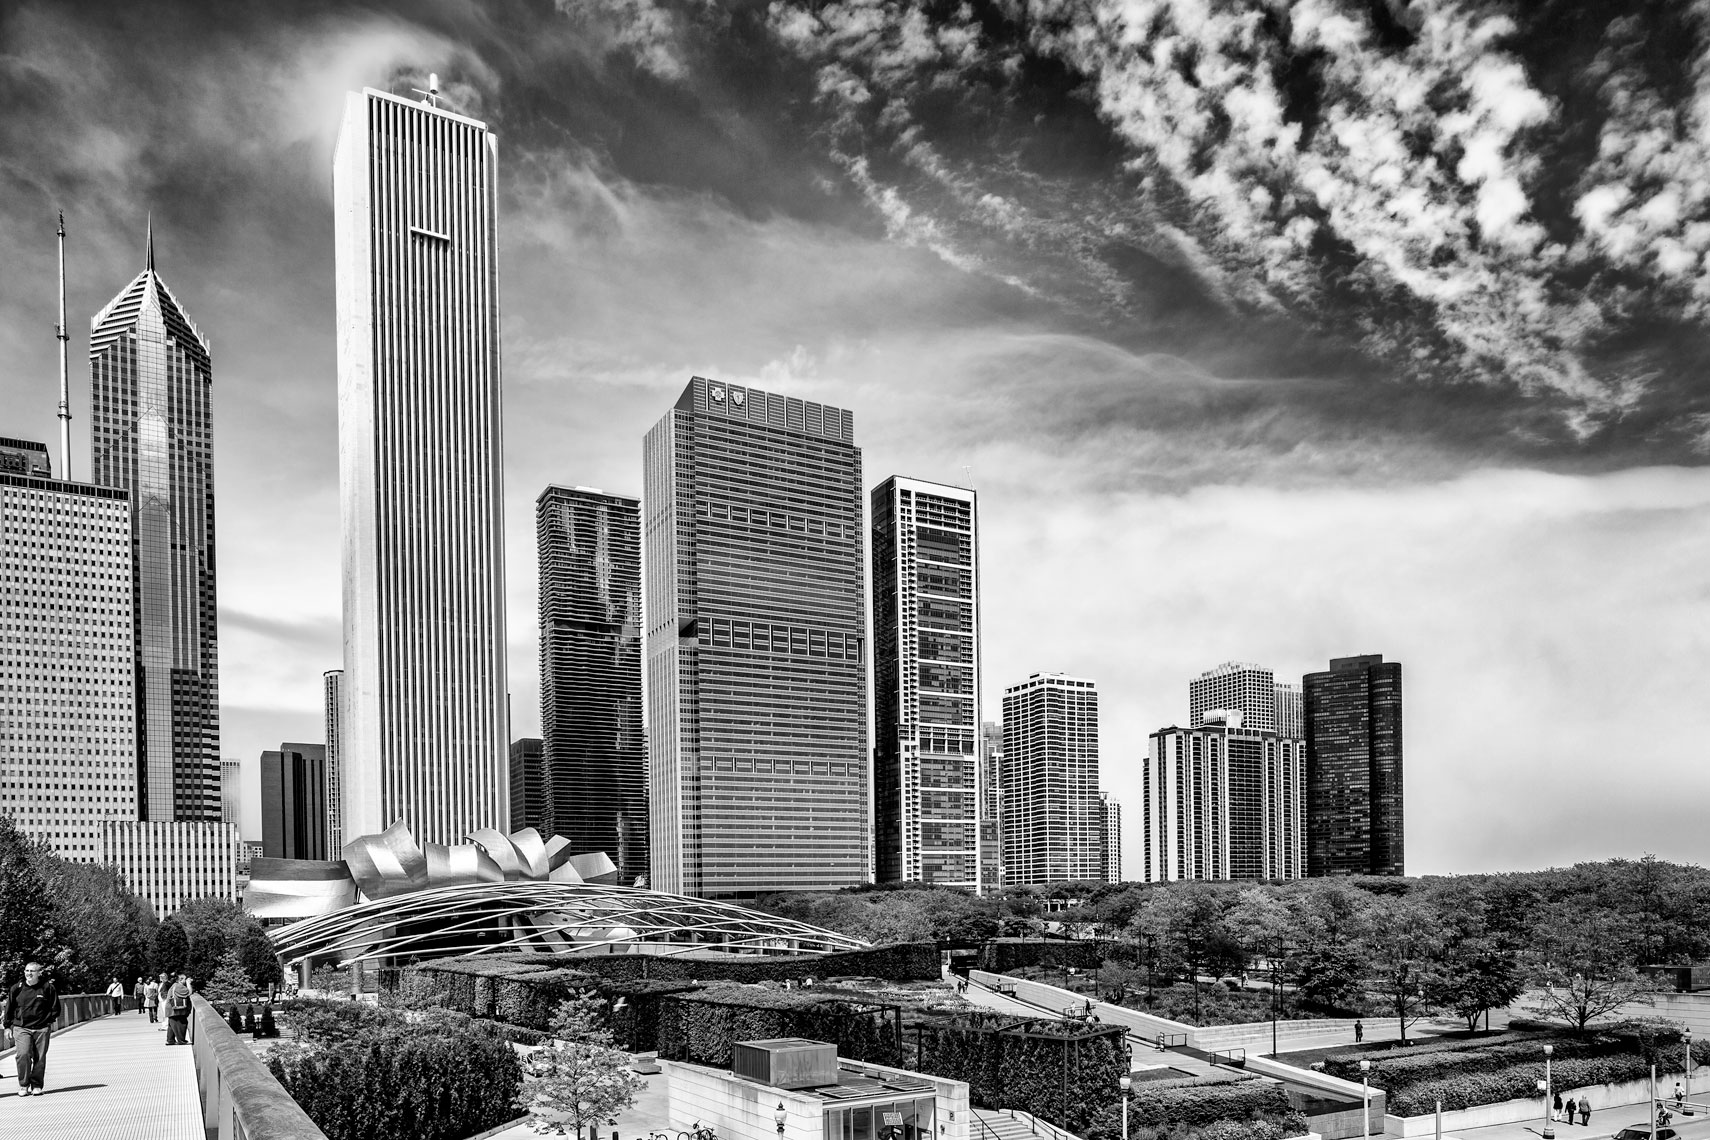 Chicago-3892-Edit-2-Edit.jpg